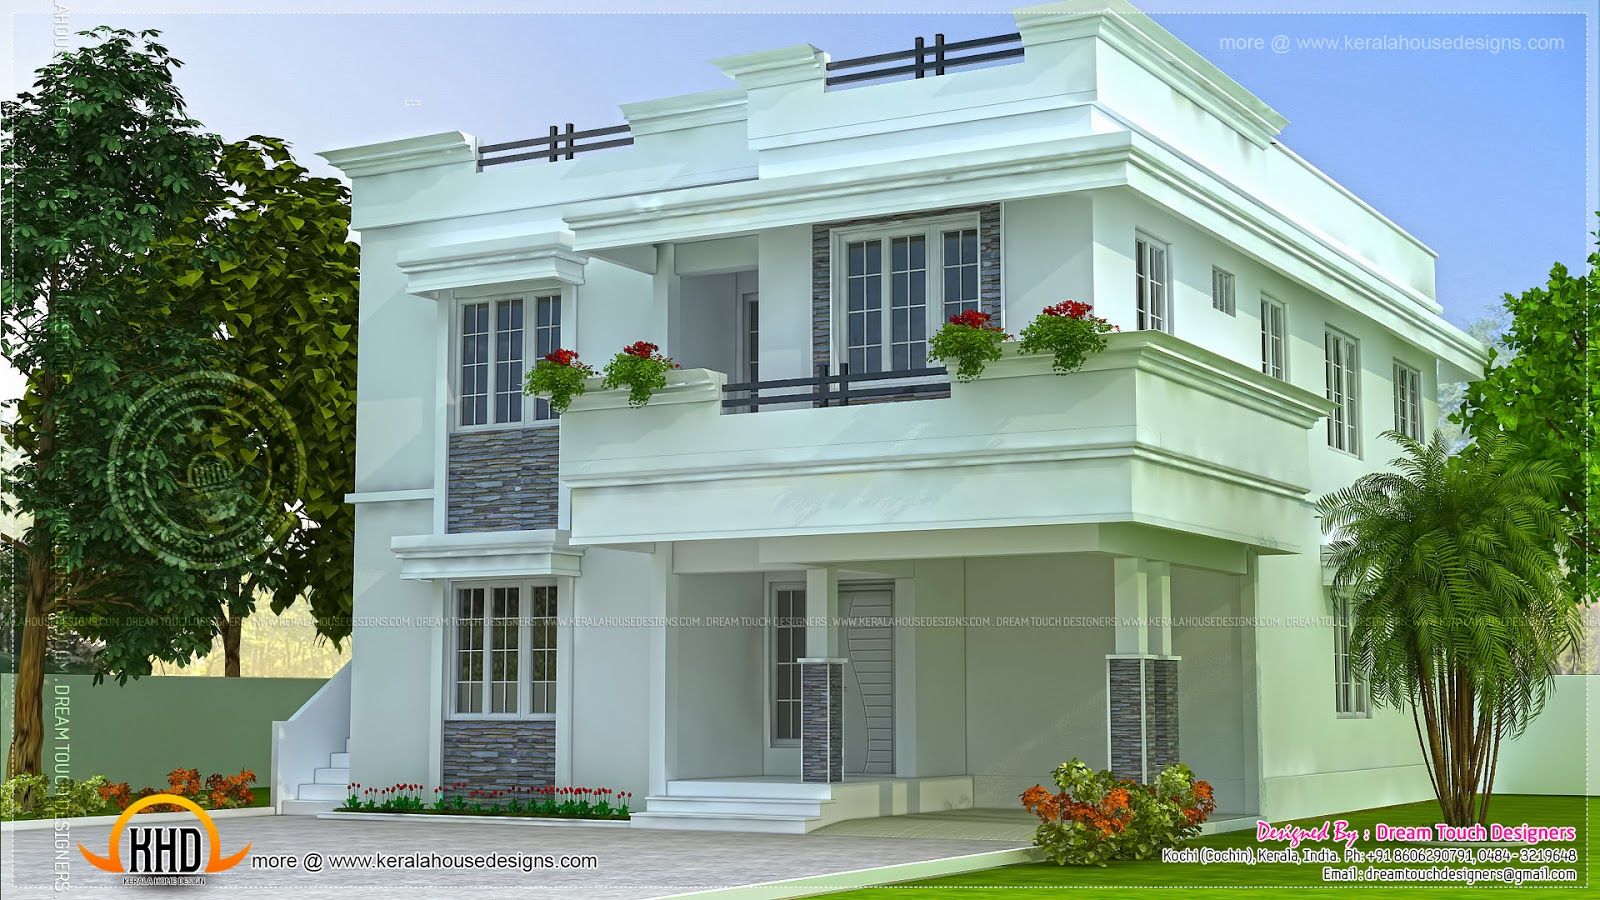 Modern beautiful home design kerala home design and for Attractive home designs